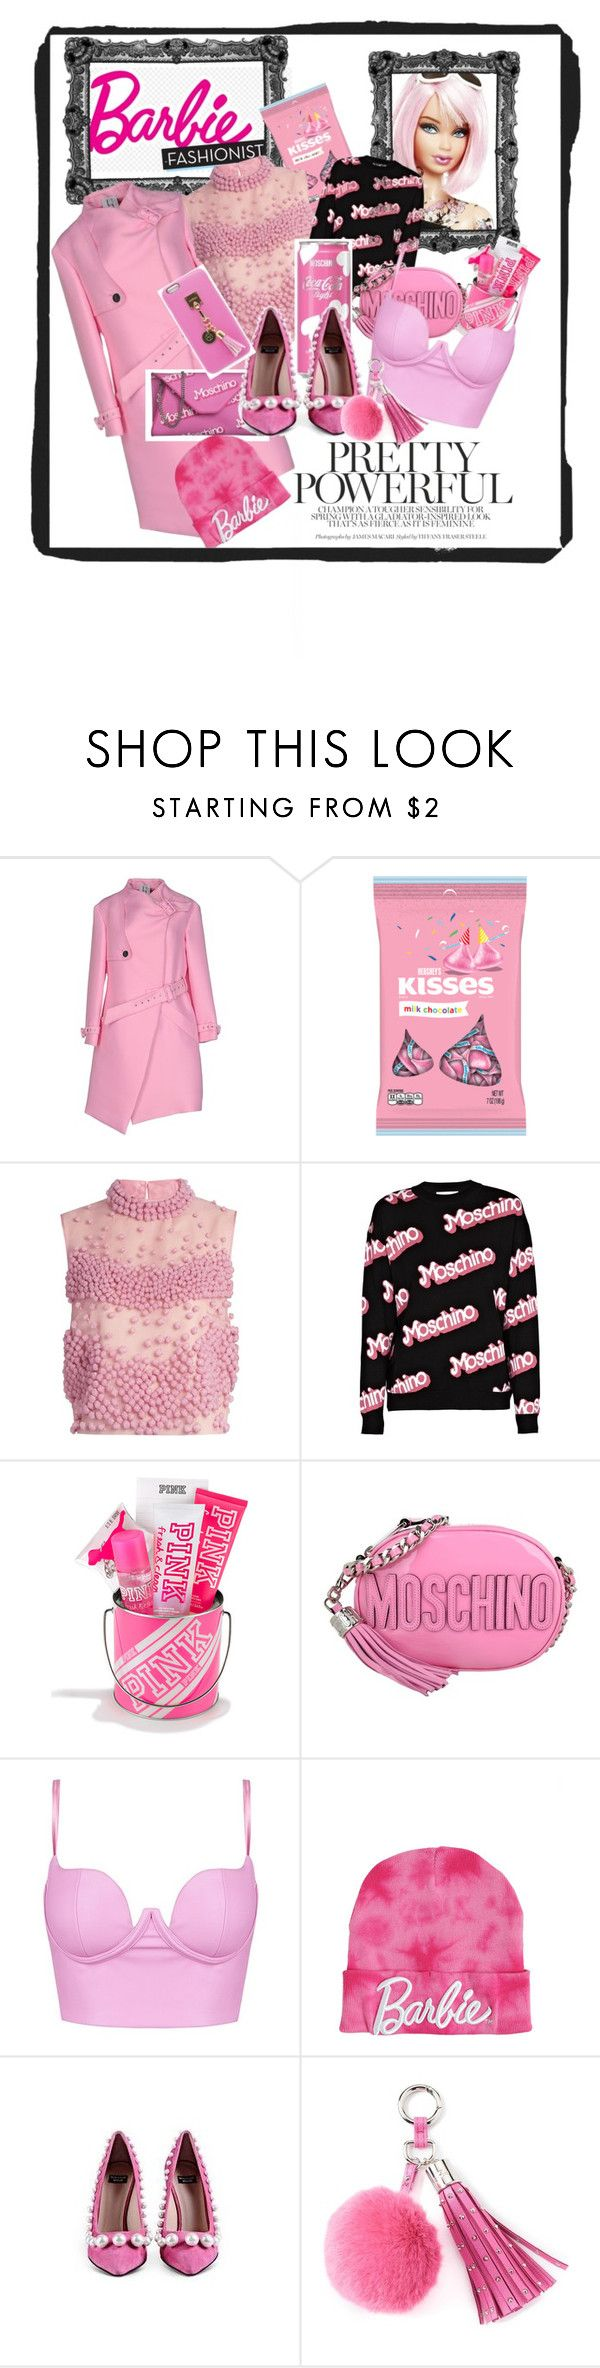 """""""barbie fashion"""" by anya2991 on Polyvore featuring moda, UNIQUENESS, Hershey's, Roksanda, Moschino, Juicy Couture e Iphoria"""